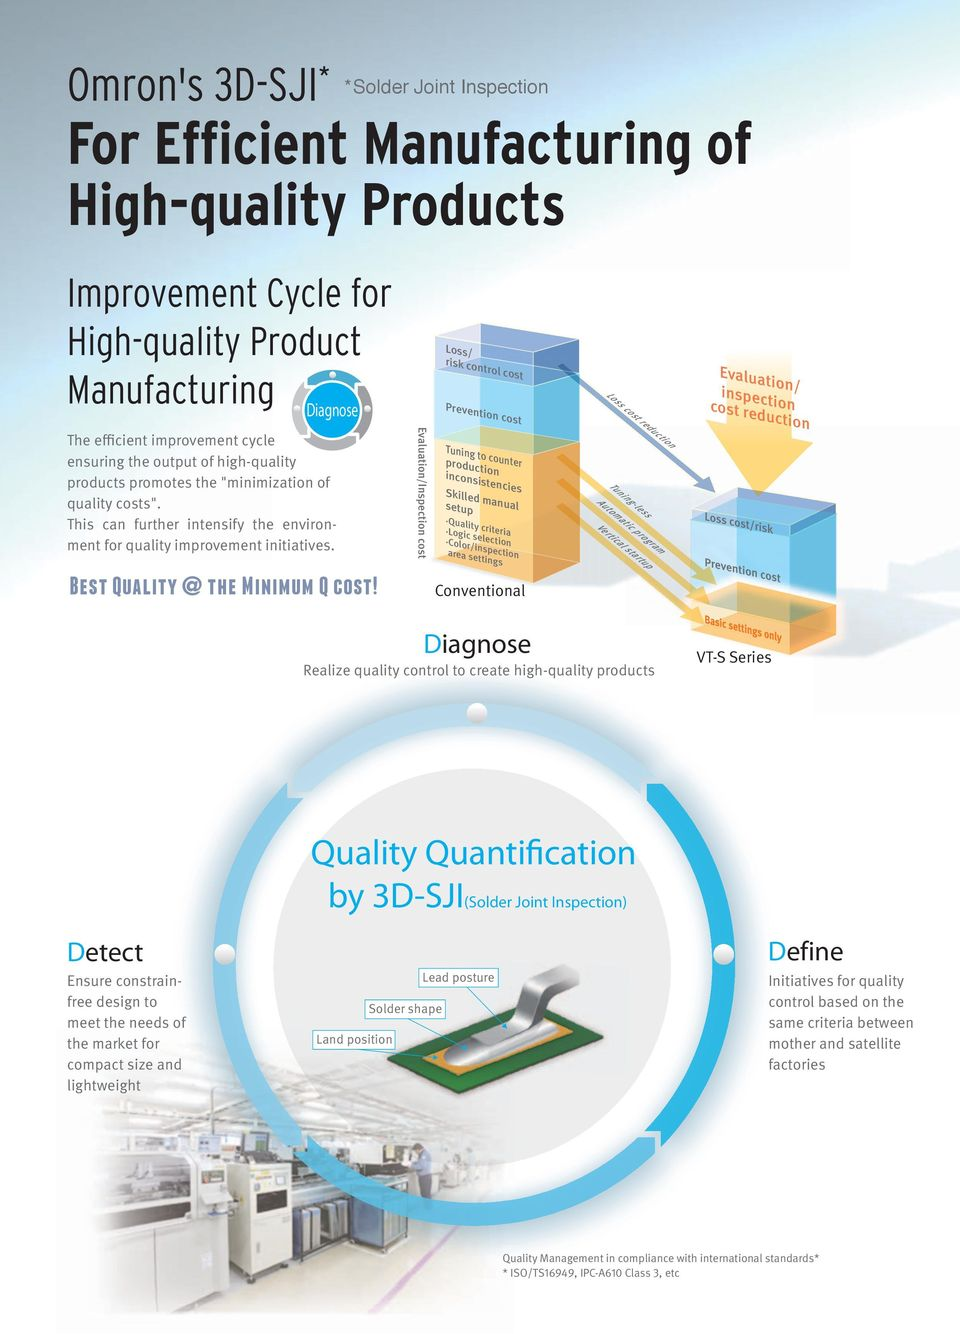 VT-S730  Omron's 3D-SJI For Efficient Manufacturing of High